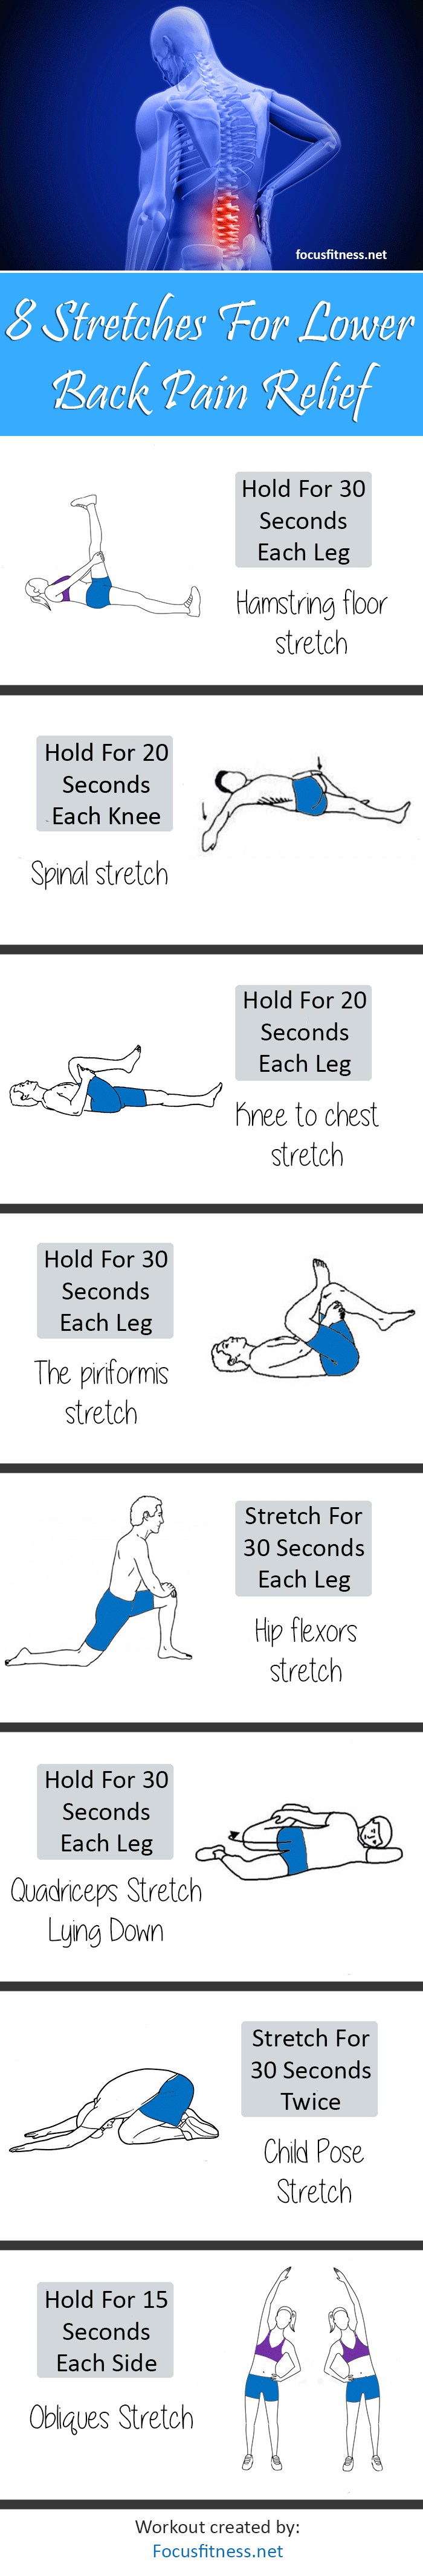 Stretch Exercises For Lower Back Pain Relief